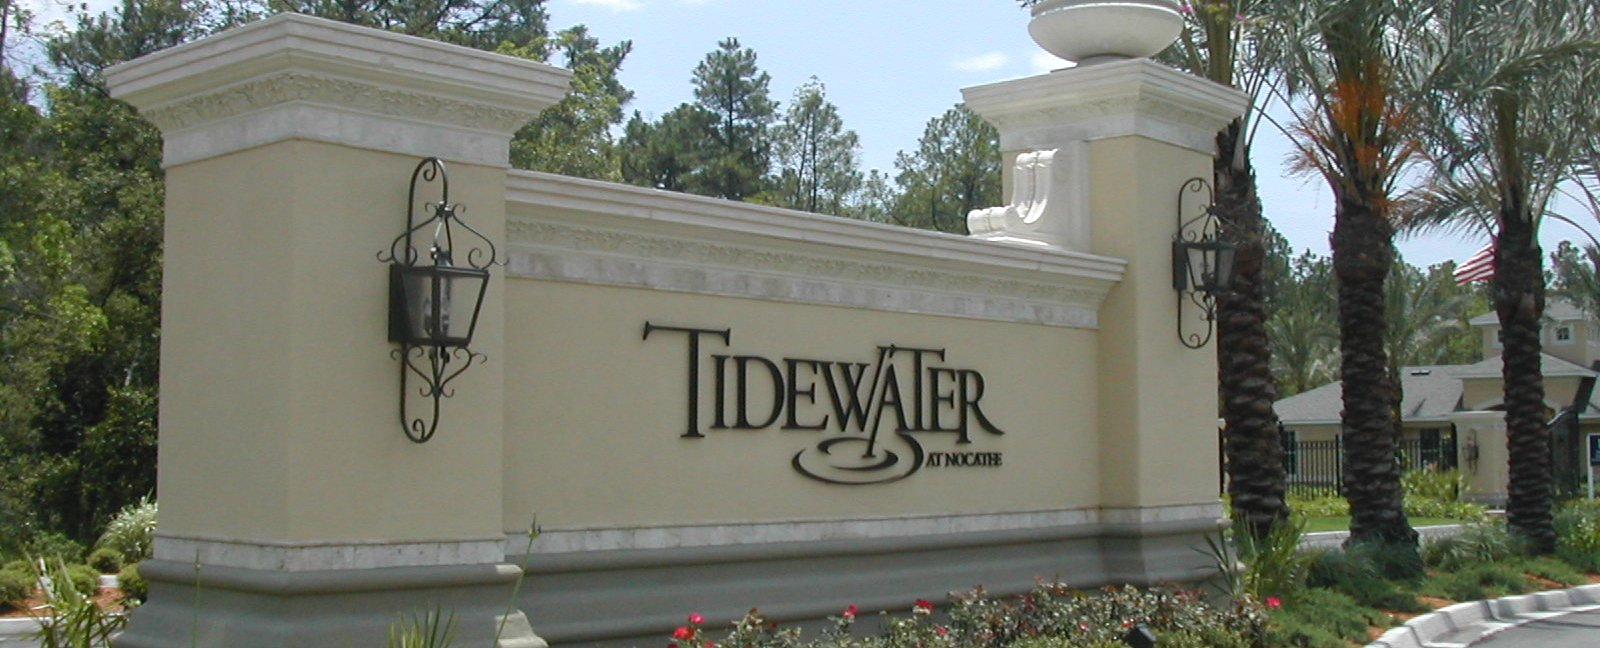 Tidewater at Nocatee Townhomes